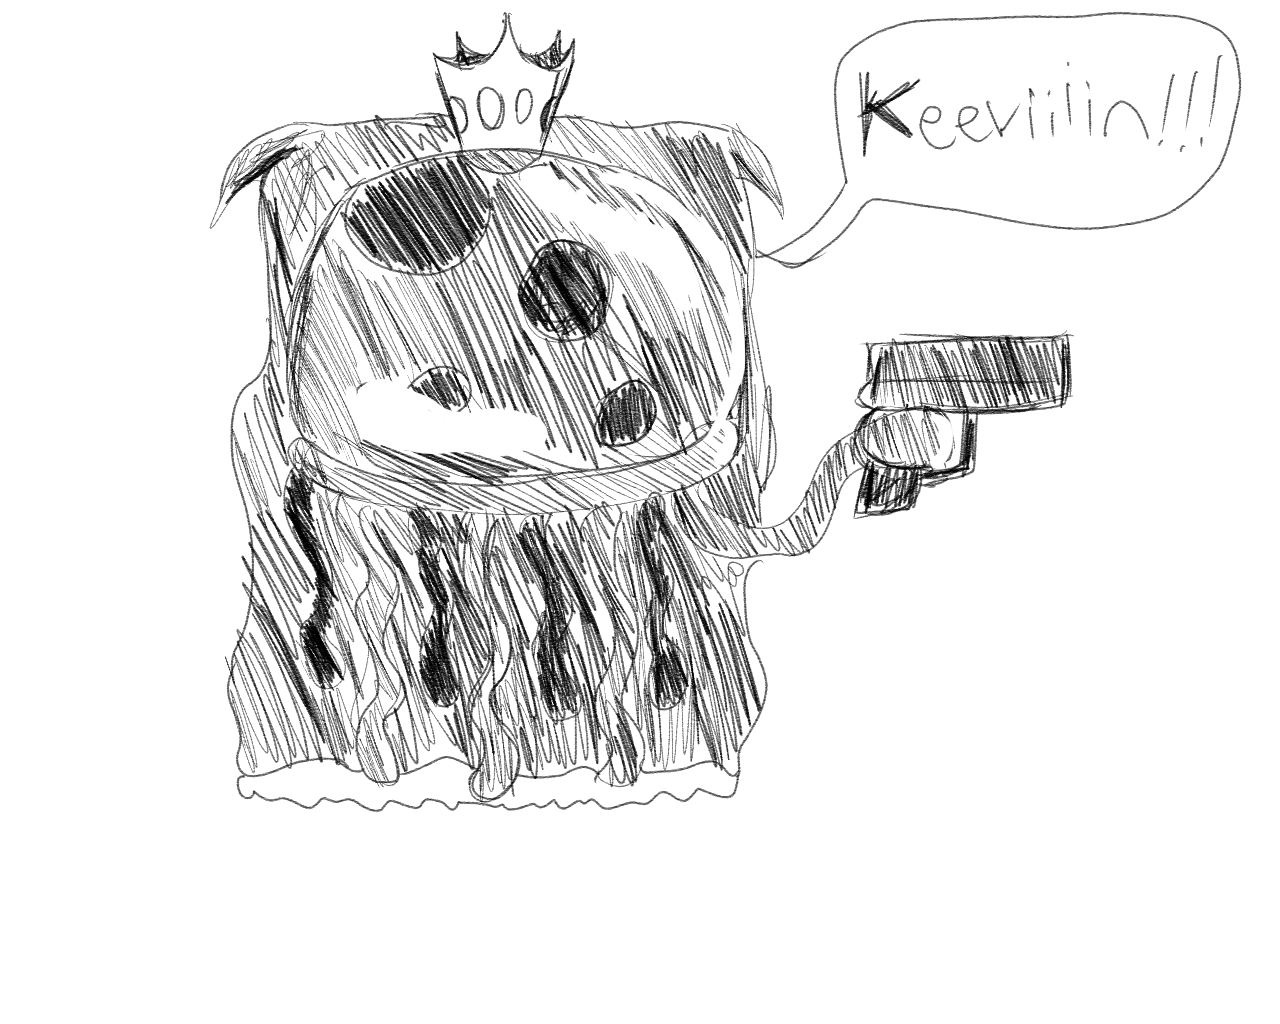 King Jellyfish with a gun